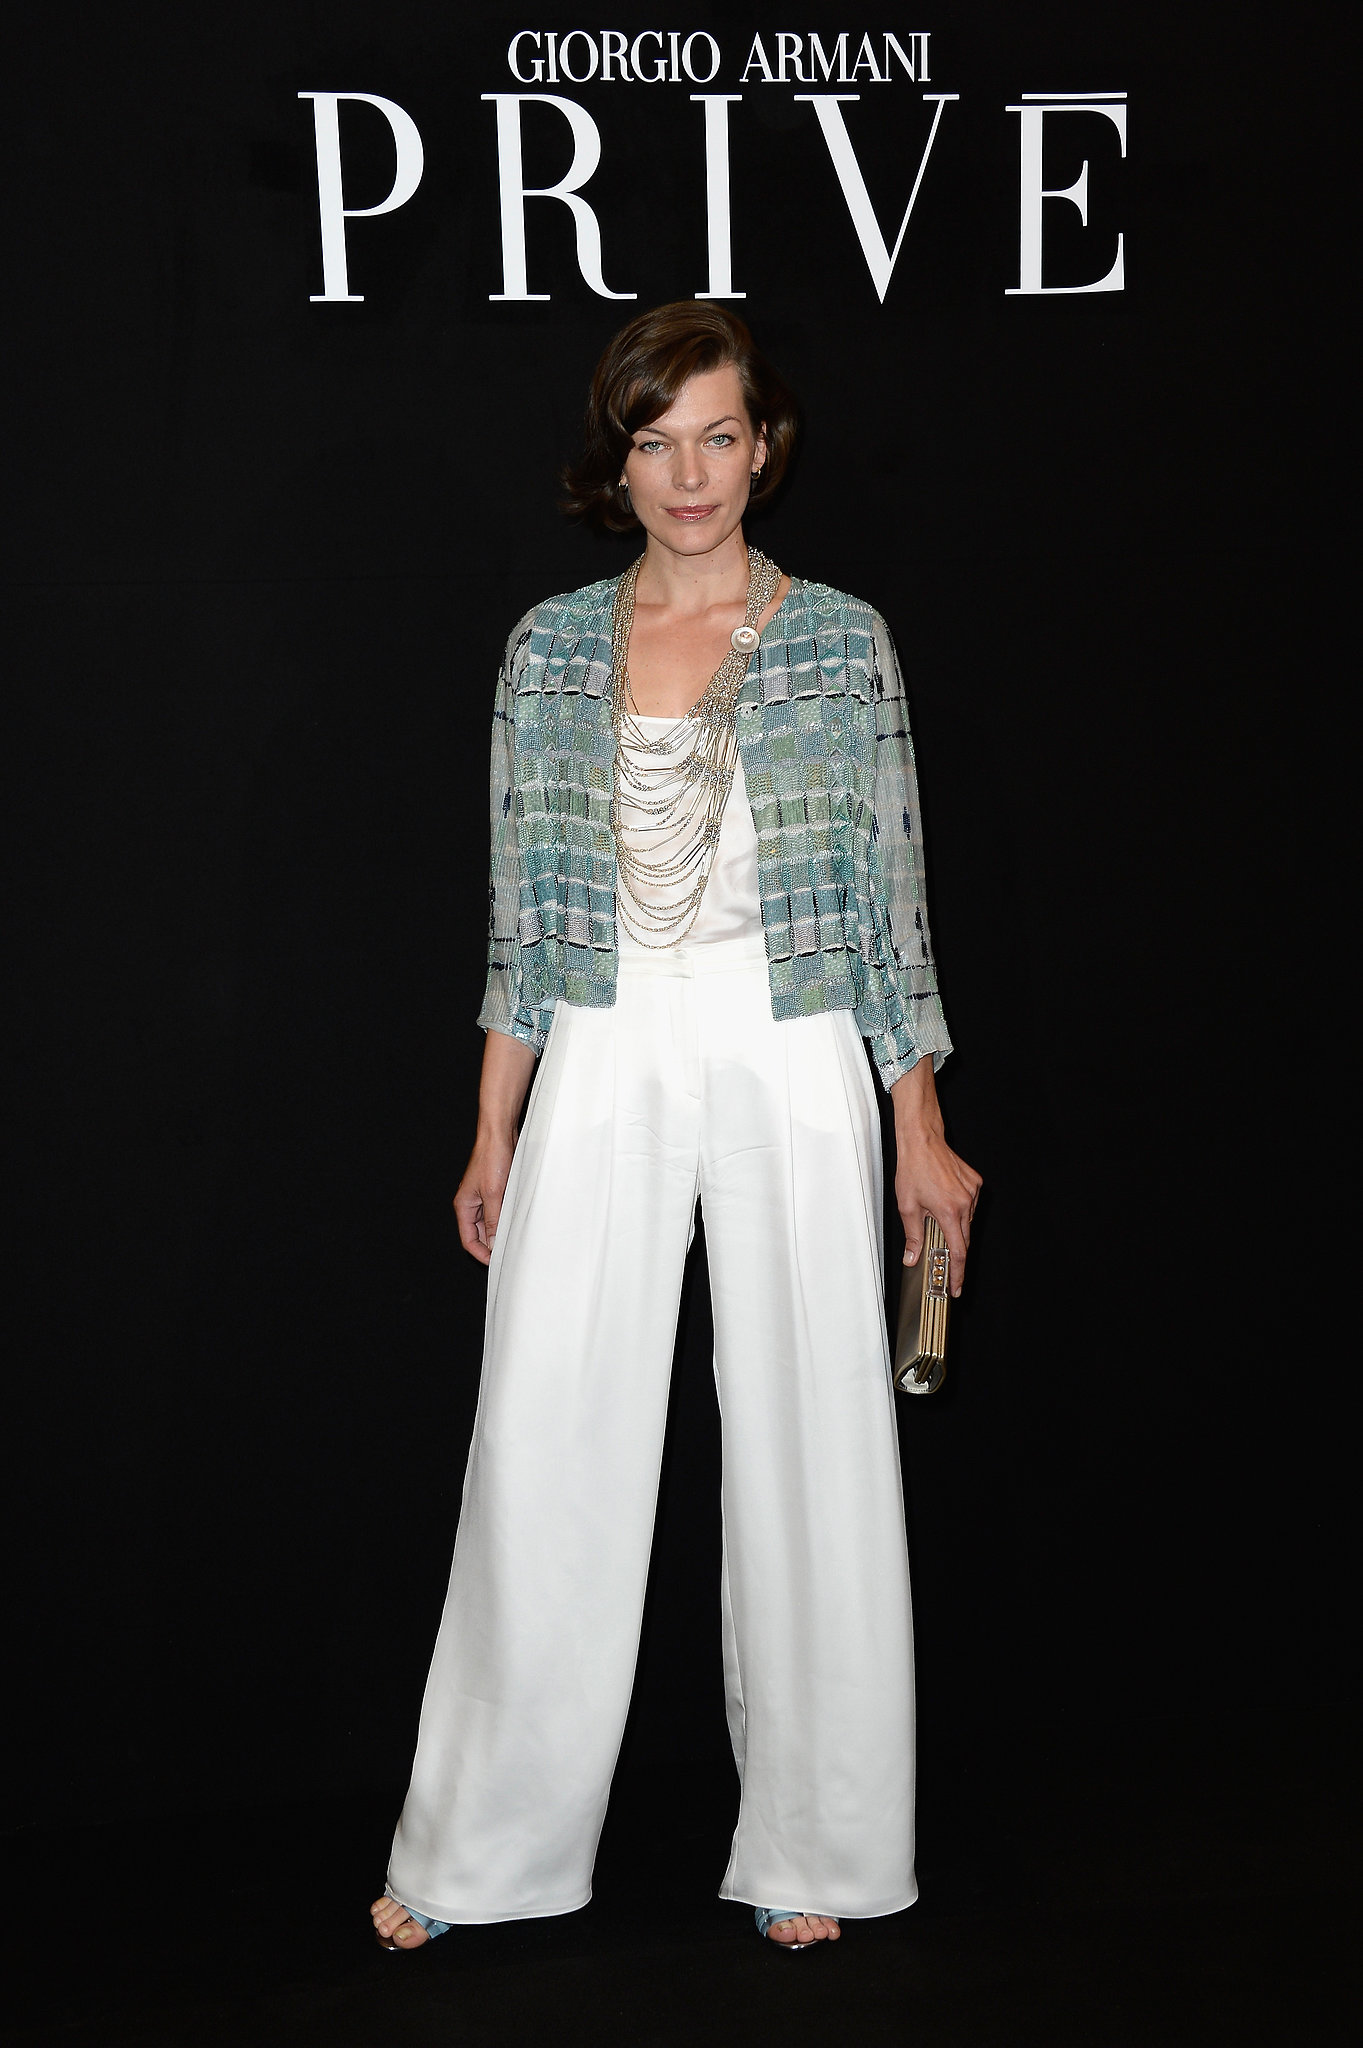 Milla Jovovich added dramatic flair to her all-white outfit at the Armani Privé show with a blue jacket and multistrand necklace.